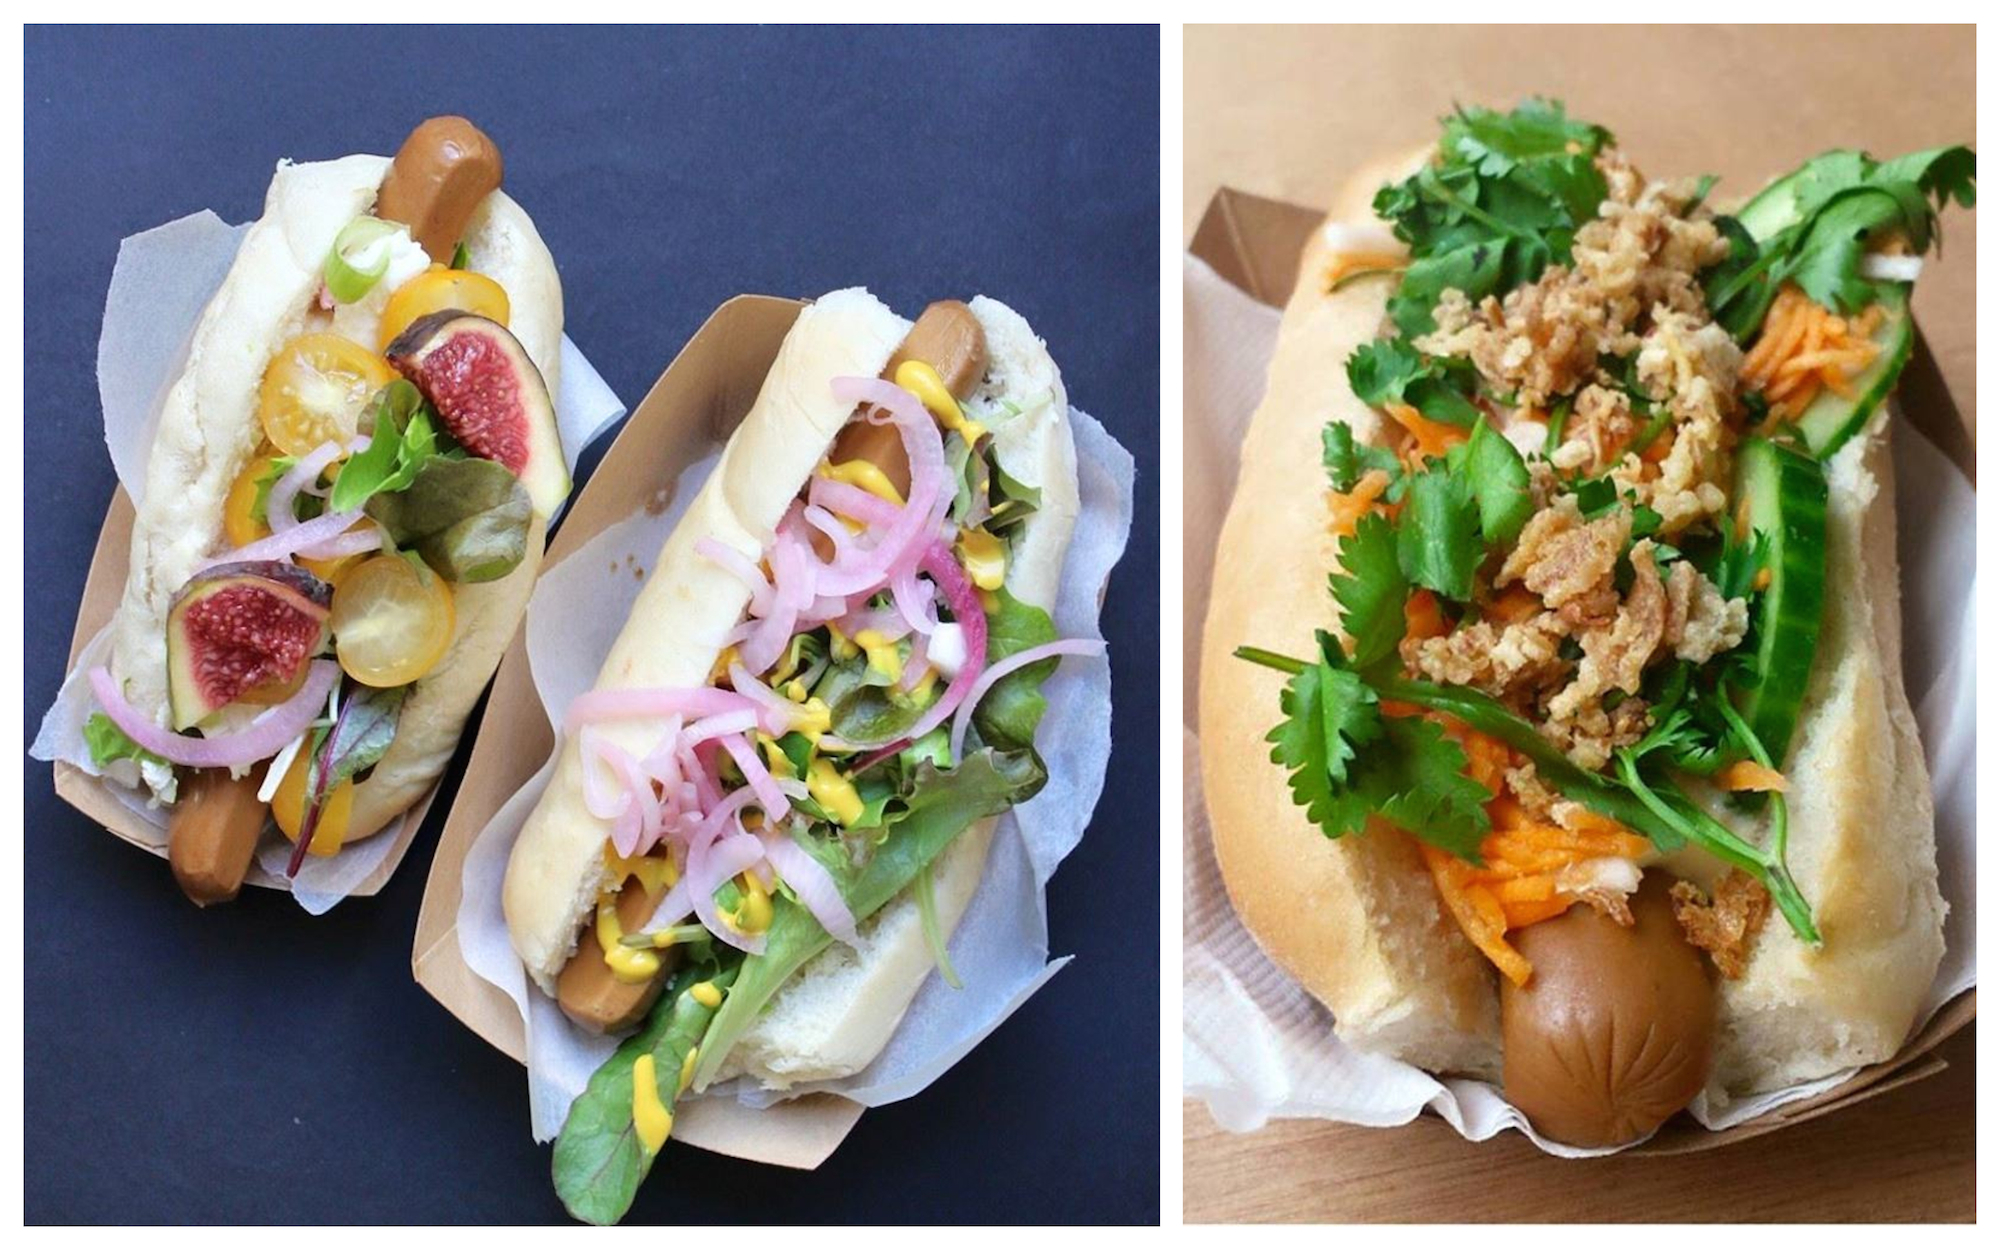 HiP Paris Blog rounds up the top brunch spots in Paris like the Tricycle for the delicious vegan hotdogs with a multitude of toppings from fresh fruit to onions.